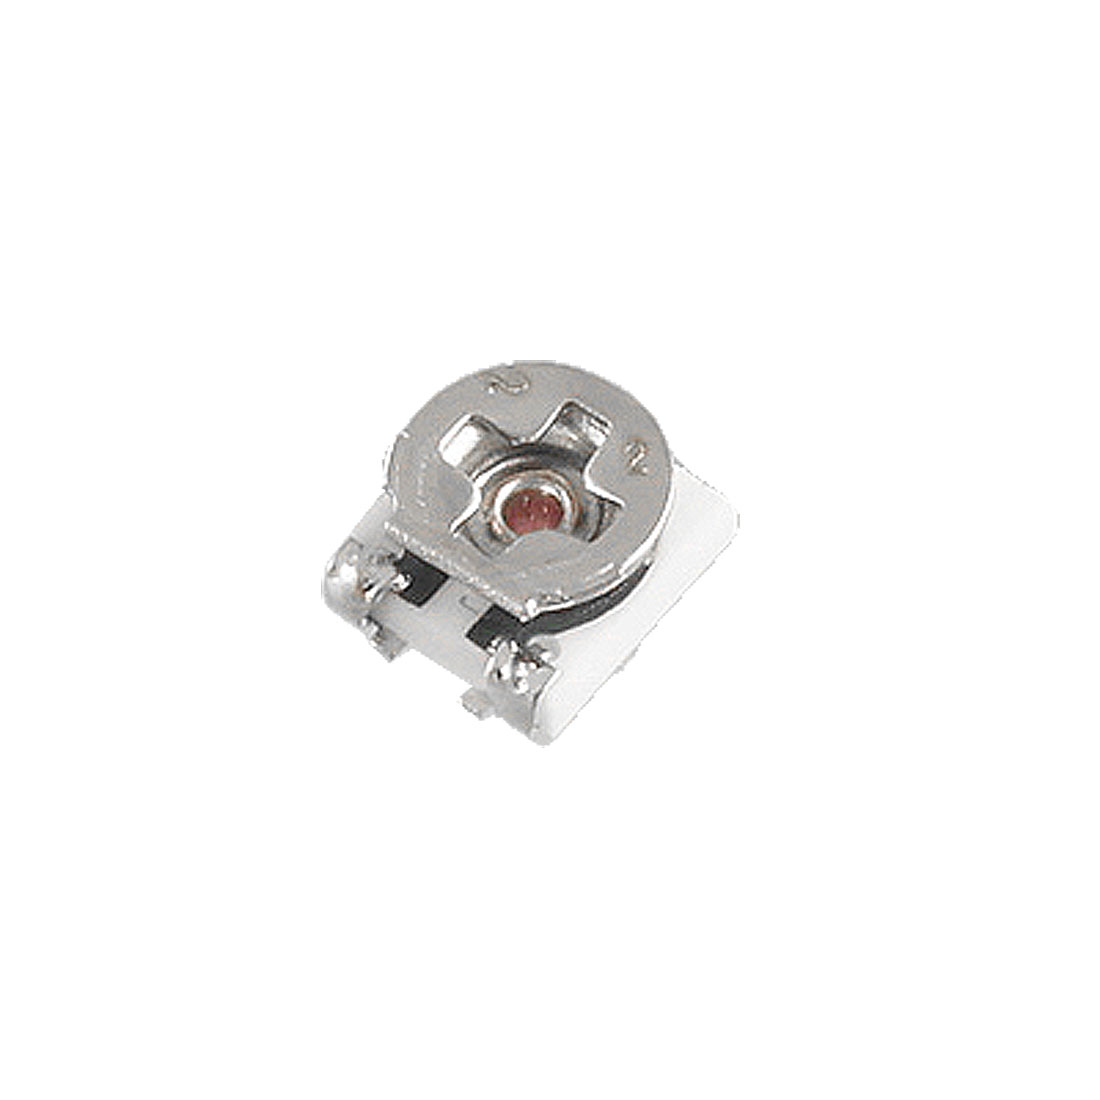 100 Pcs Single Turn 200 ohm SMD Trimmer Potentiometer 3x3mm